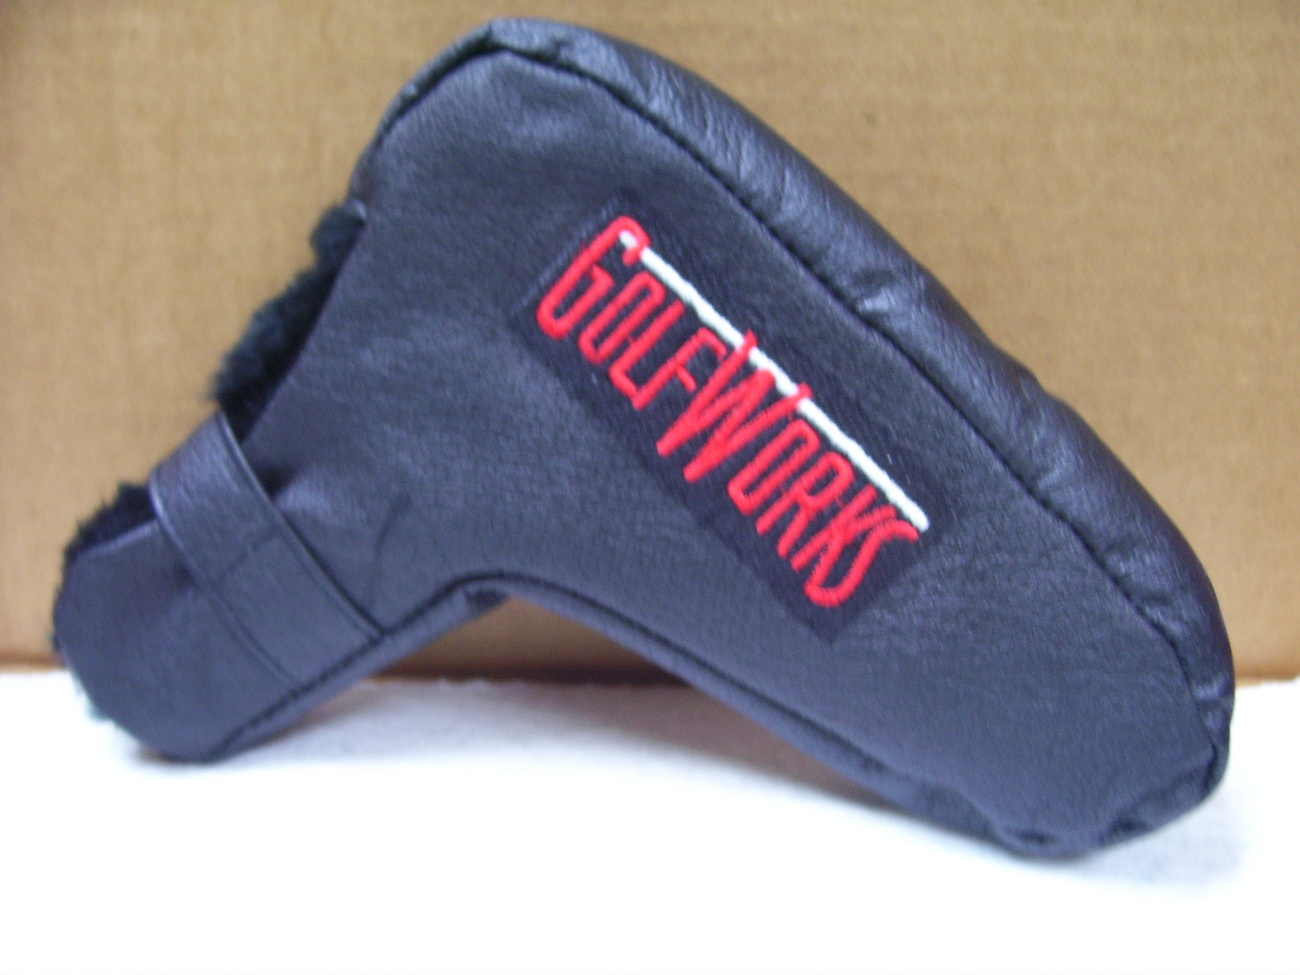 GolfWorks Putter Head Cover